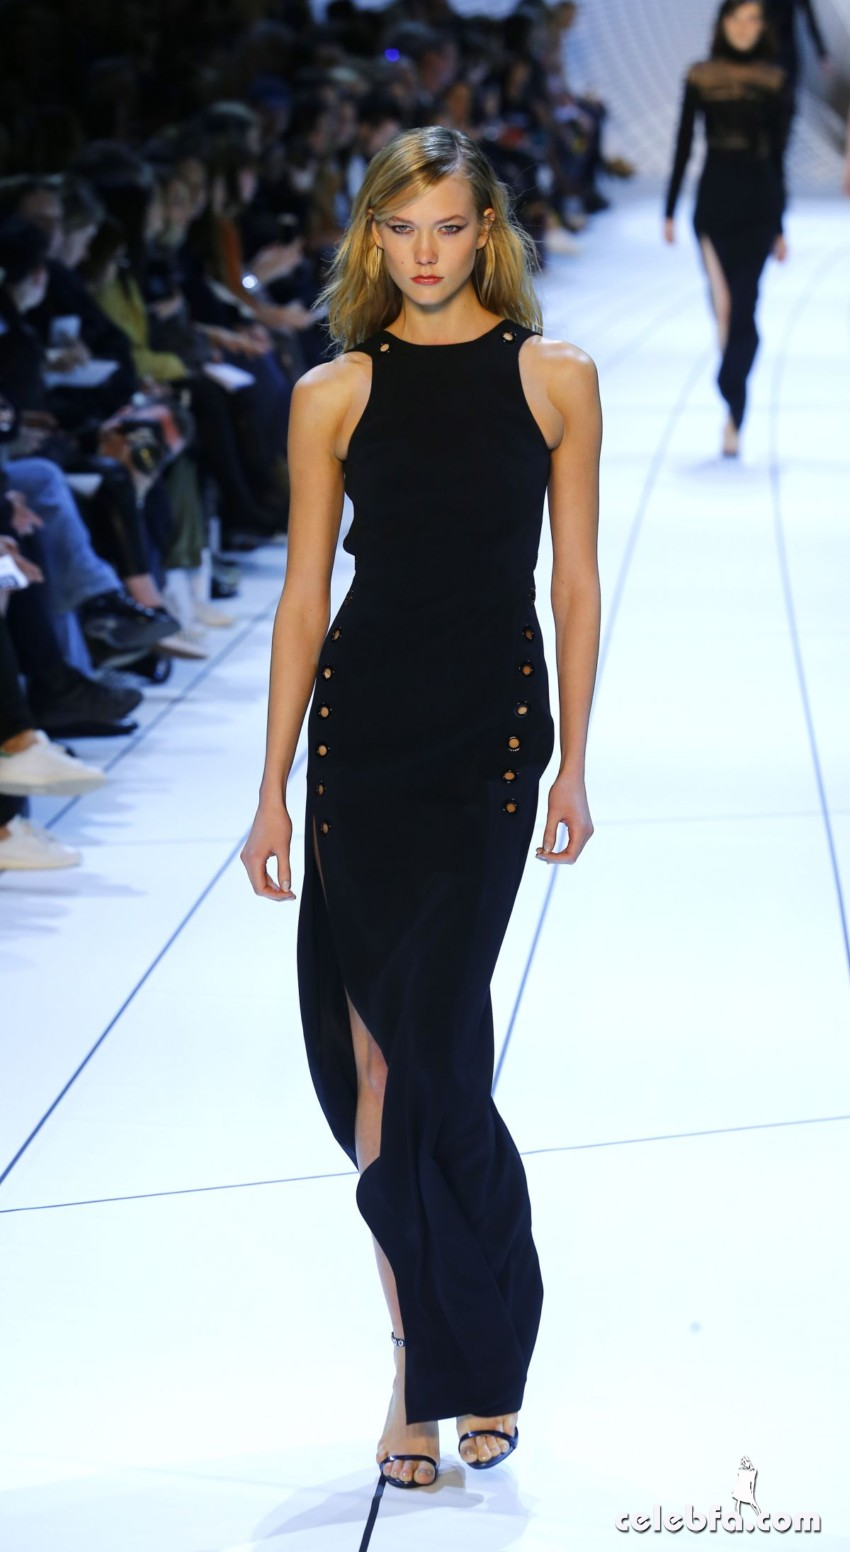 karlie-kloss-at-mugler-fashion-show-in-paris (1)